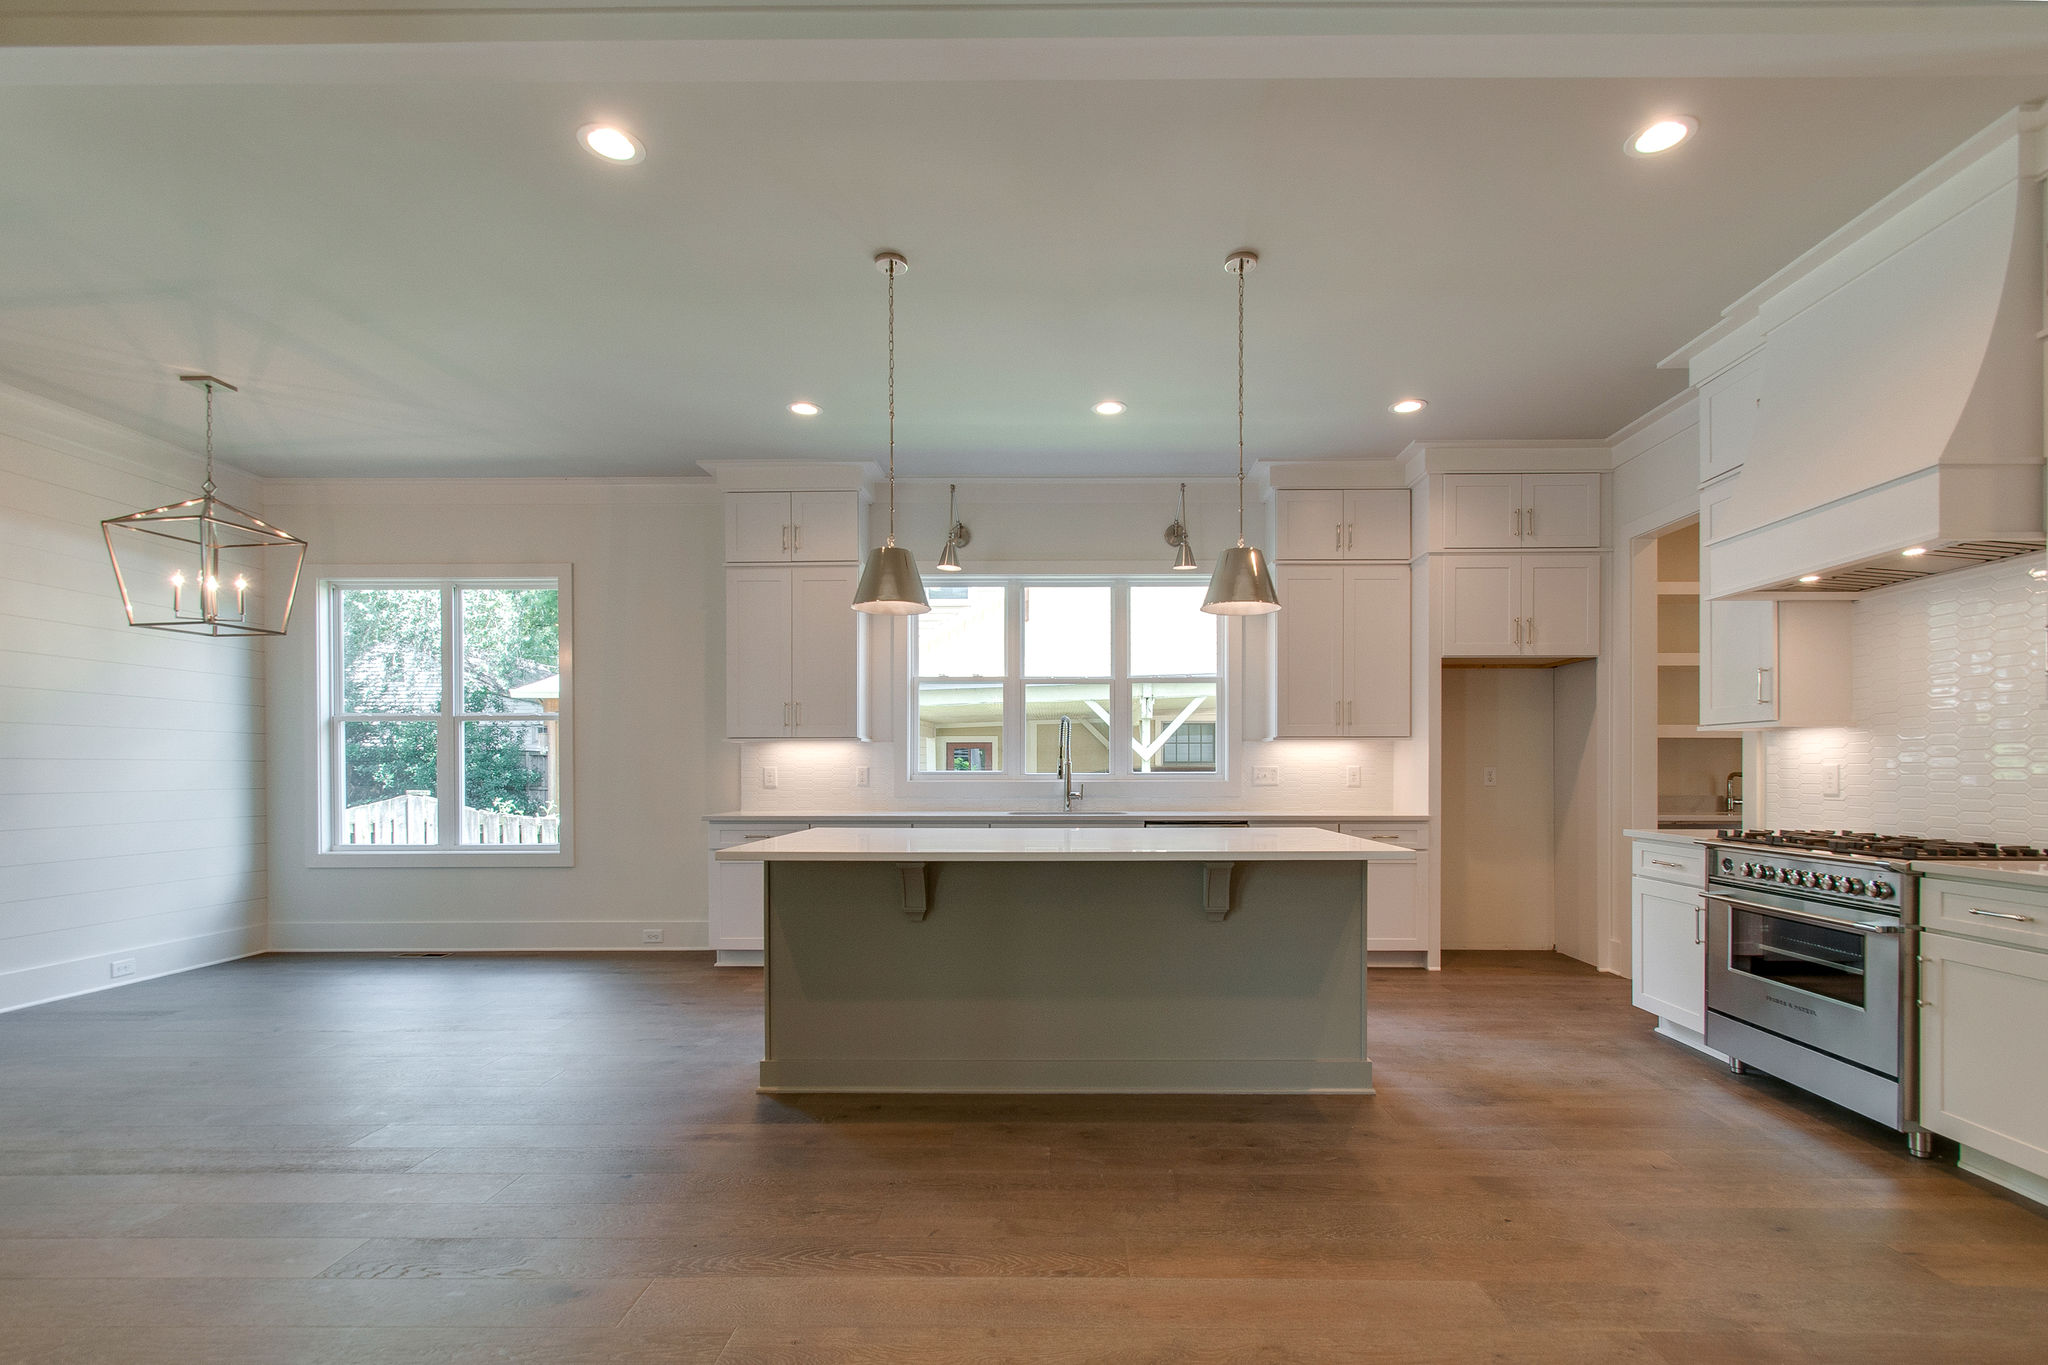 New Homes with open space kitchen v2 in Franklin, Brentwood, and Thompson Station TN with Custom Home Design